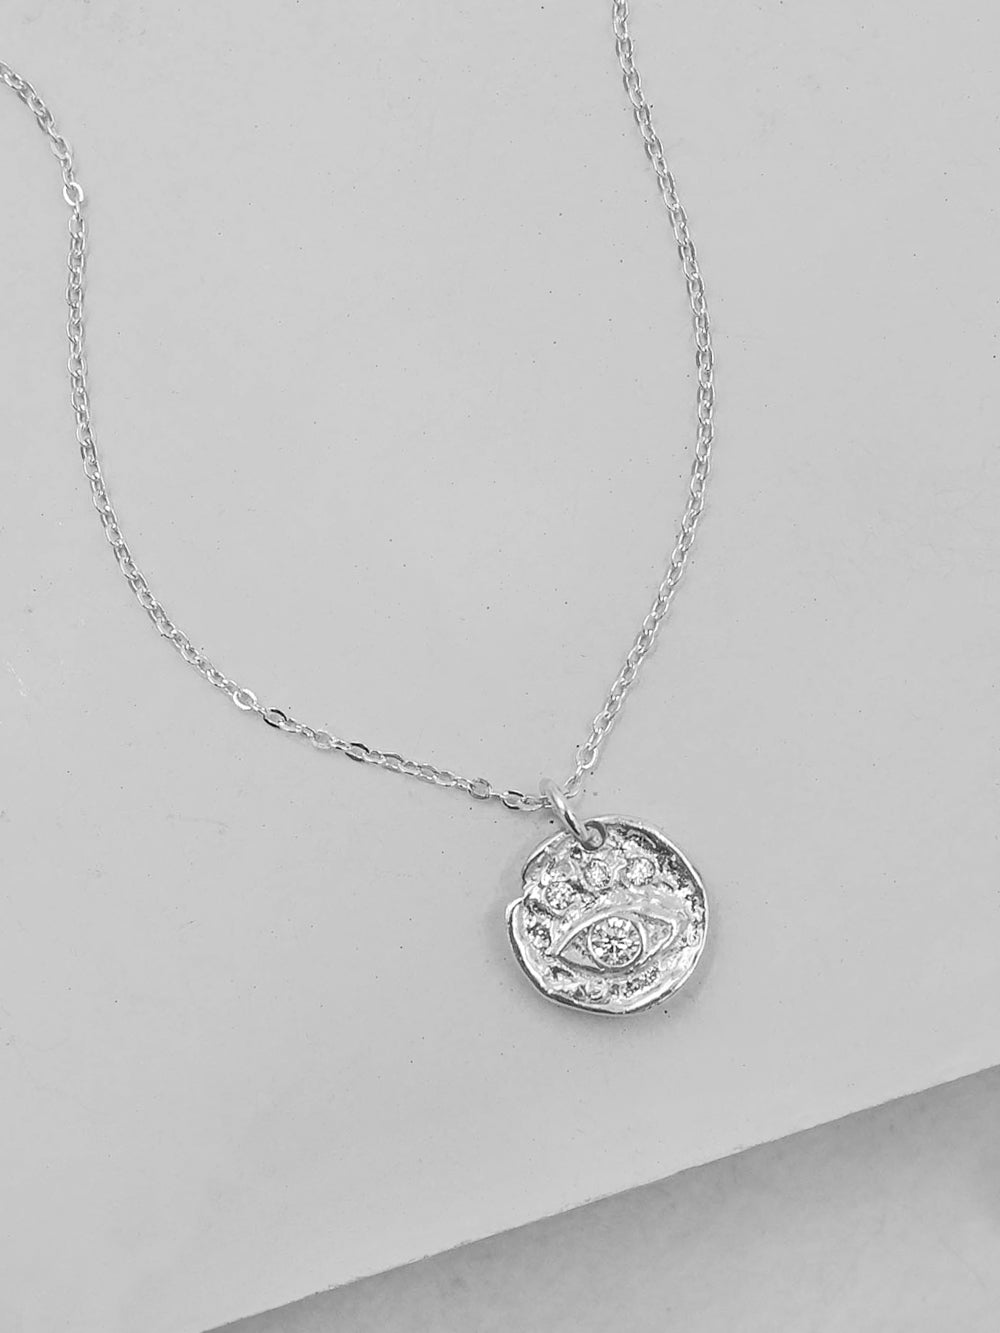 Rhodium Plated Evil Eye Charm Necklace by The Faint Hearted Jewelry